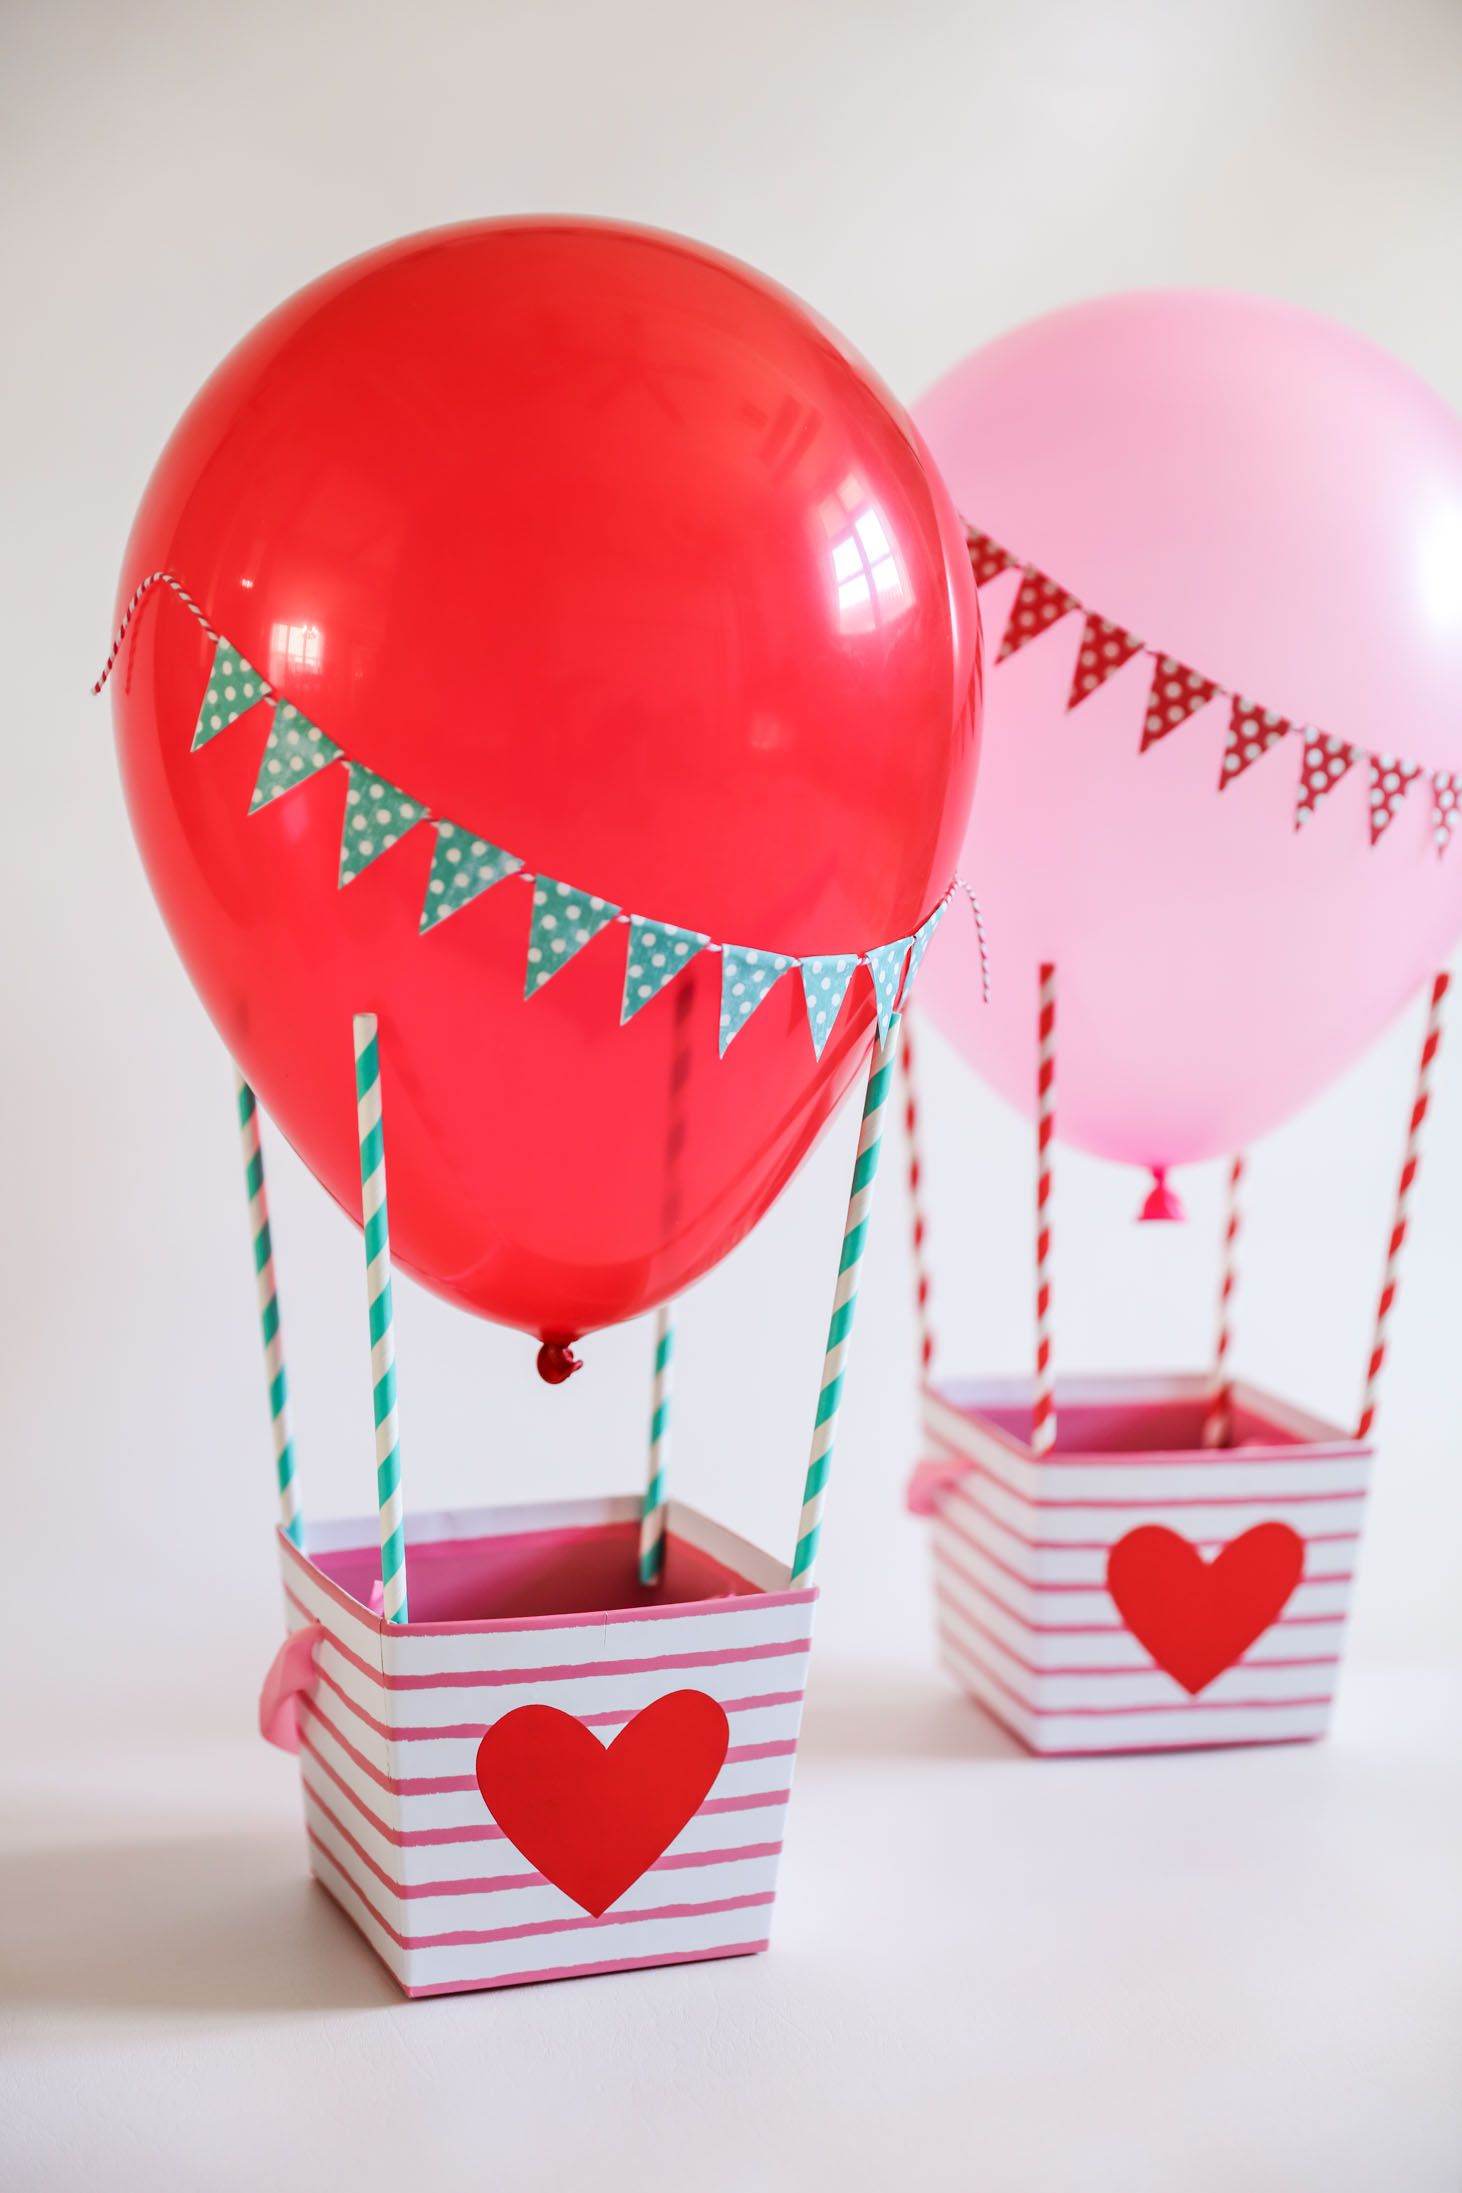 A collection of unique and cute valentines box ideas to make for class parties, home or fun. From a unicorn box to a robot box, there are fun box ideas for everyone.